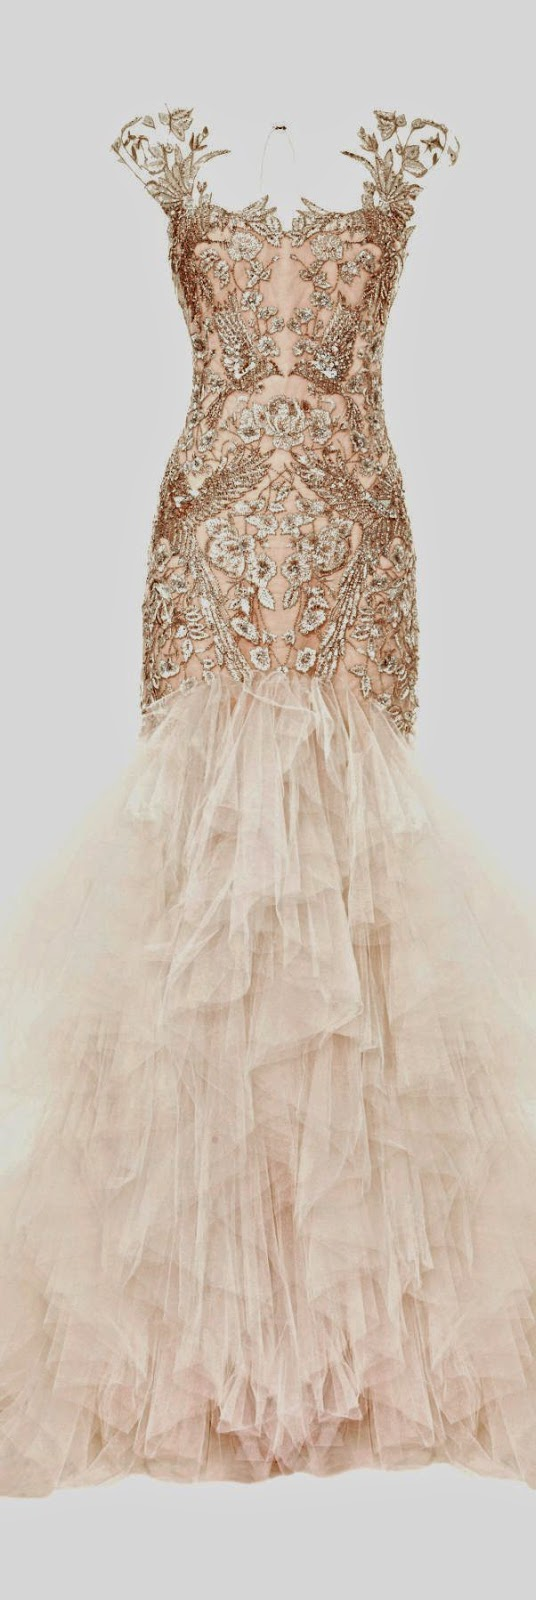 Cream colored vintage wedding dresses  Pin by Snow Flower on Vintage Clothes  Pinterest  Dresses Wedding